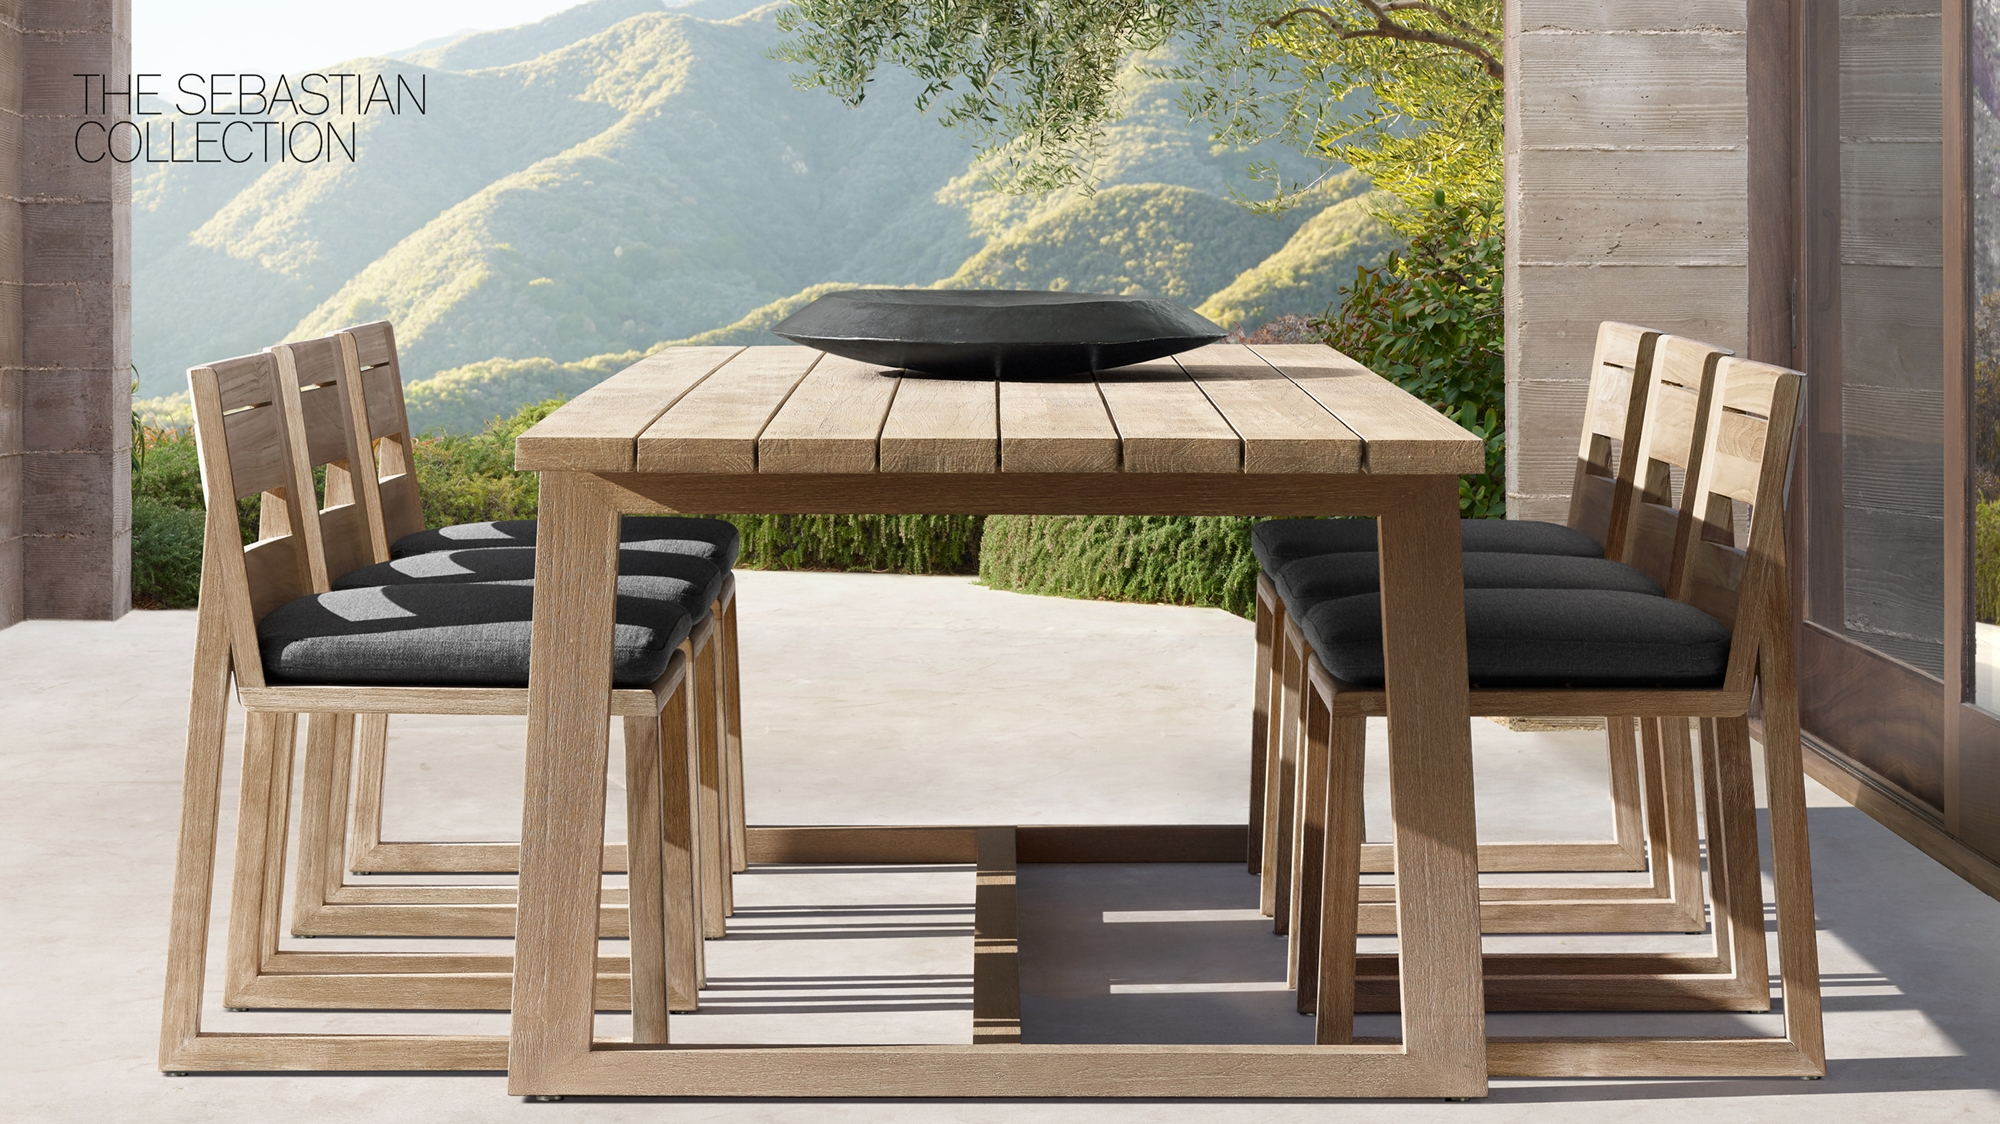 Outdoor Dining Table With Three Chairs On Each Side Wooden And